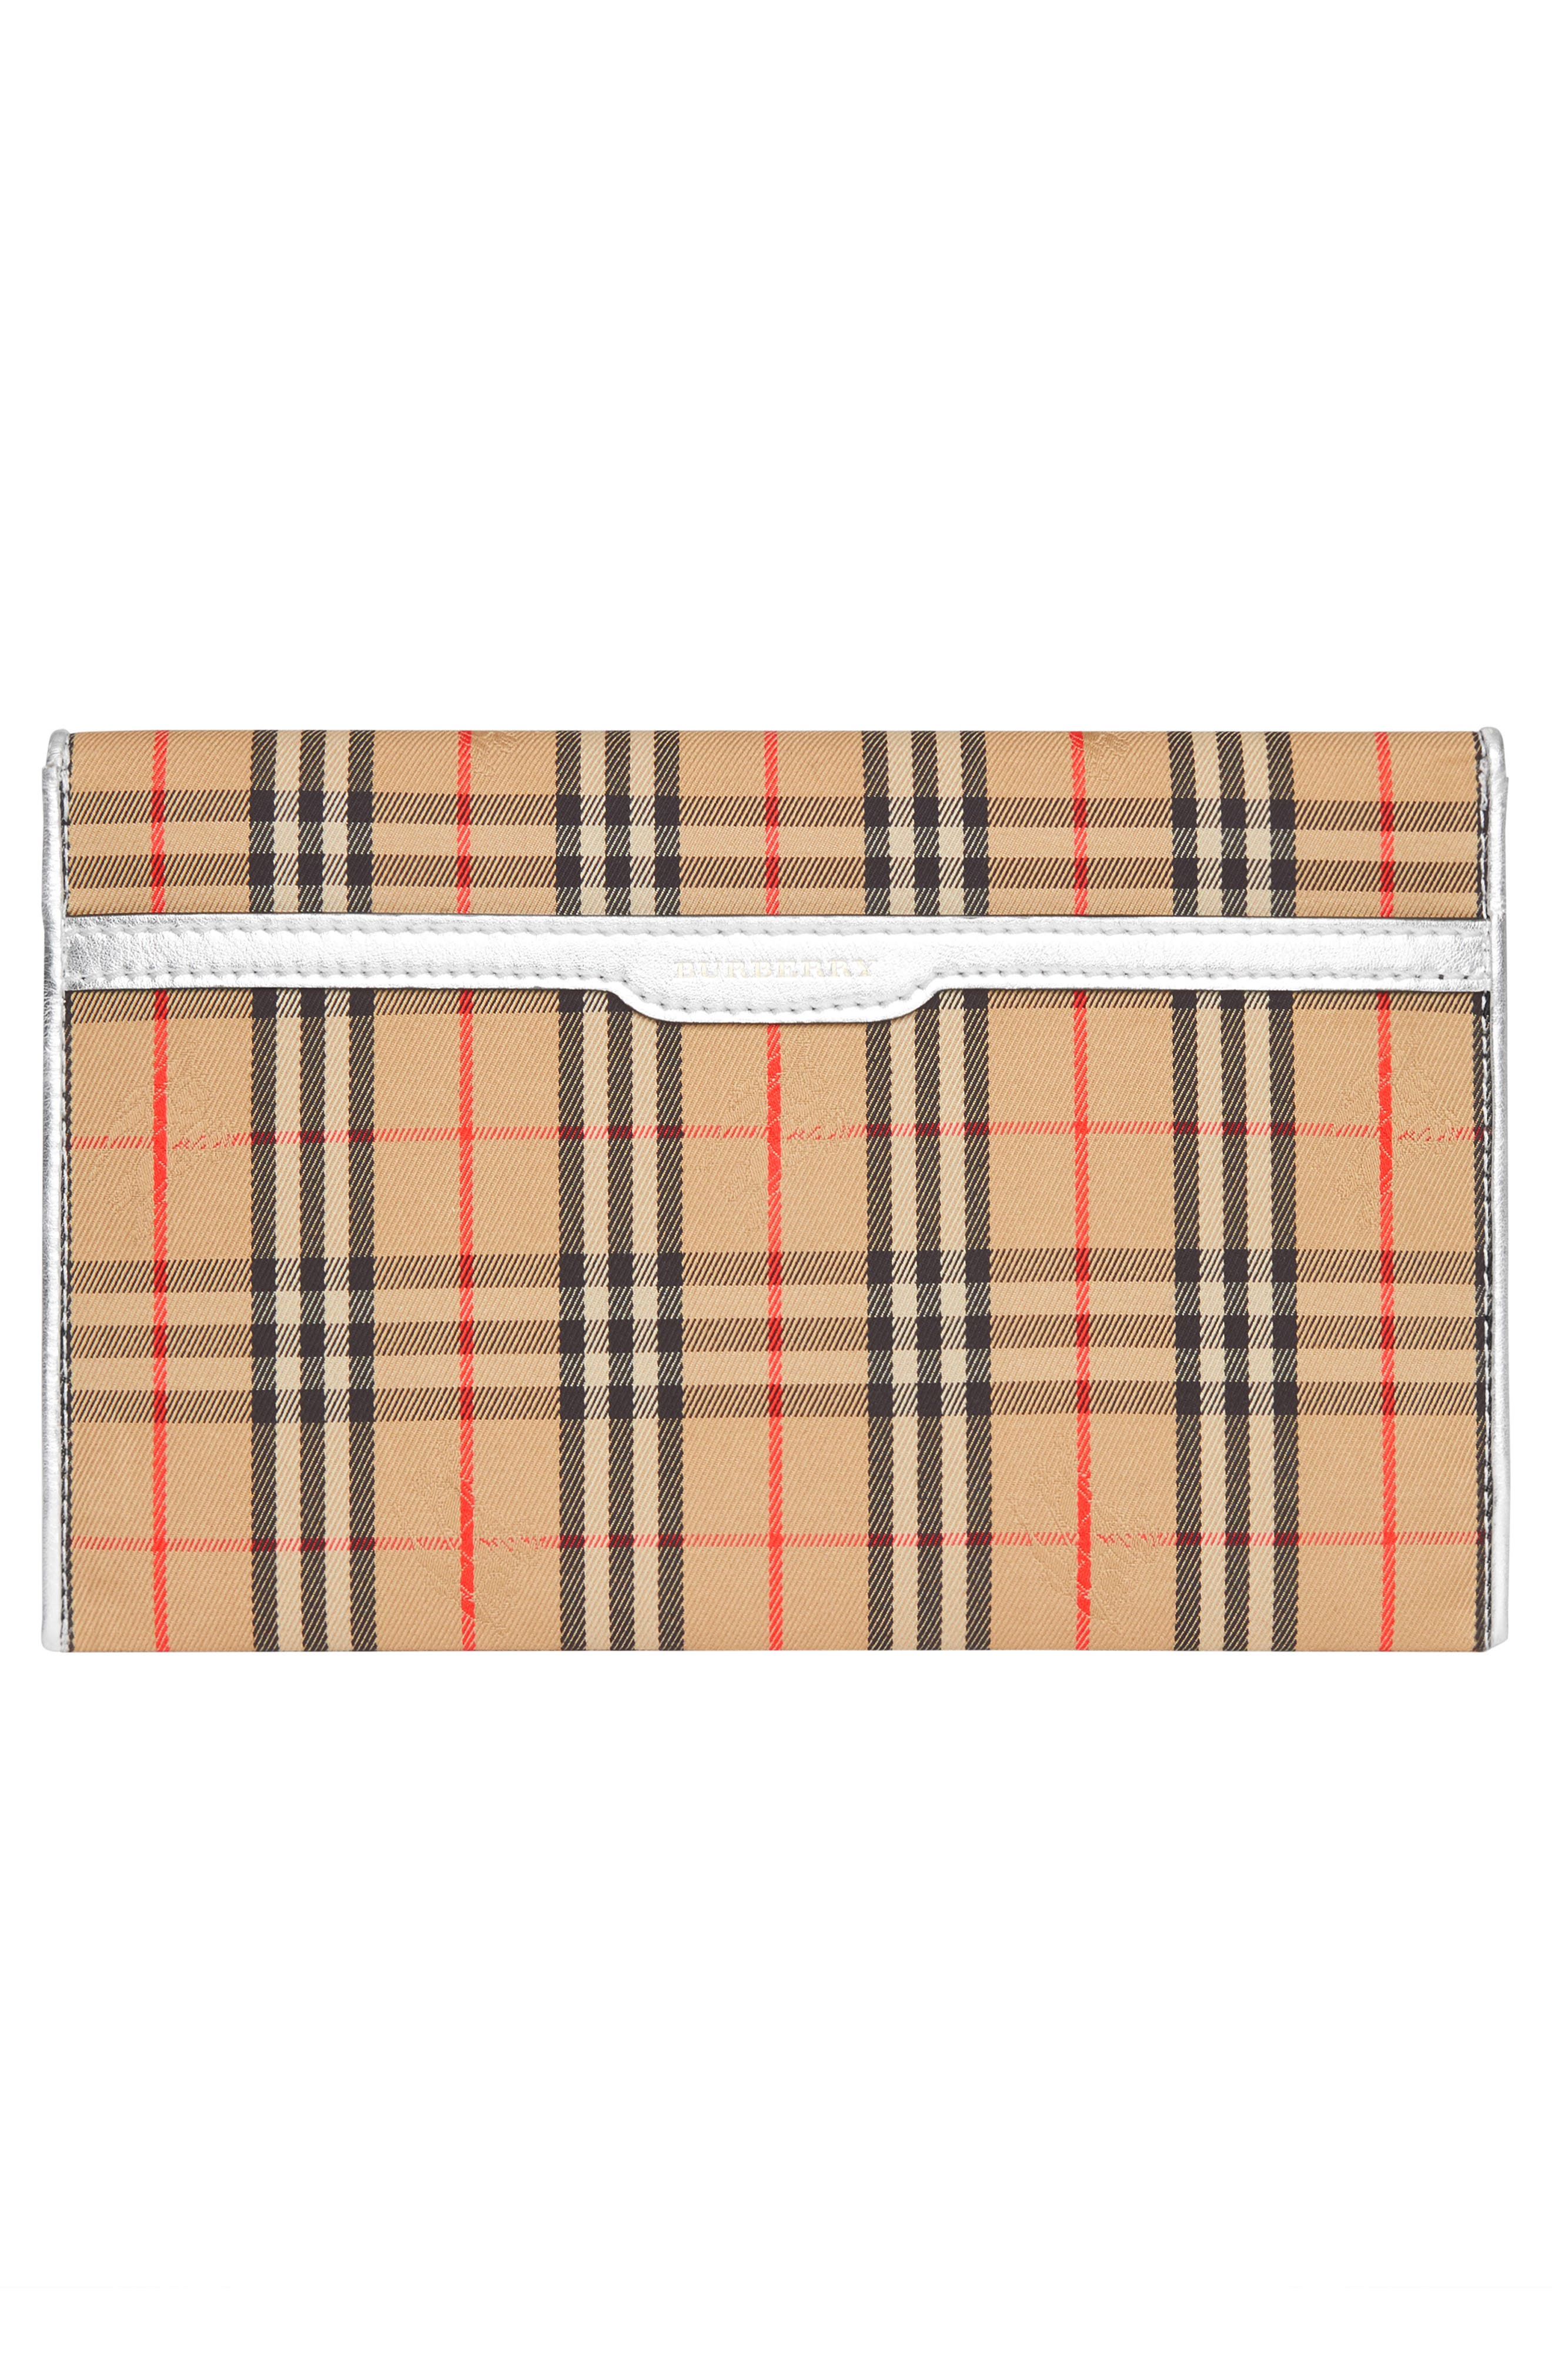 1983 Check Cotton & Leather Envelope Clutch,                             Alternate thumbnail 2, color,                             ANTIQUE YELLOW/ SILVER